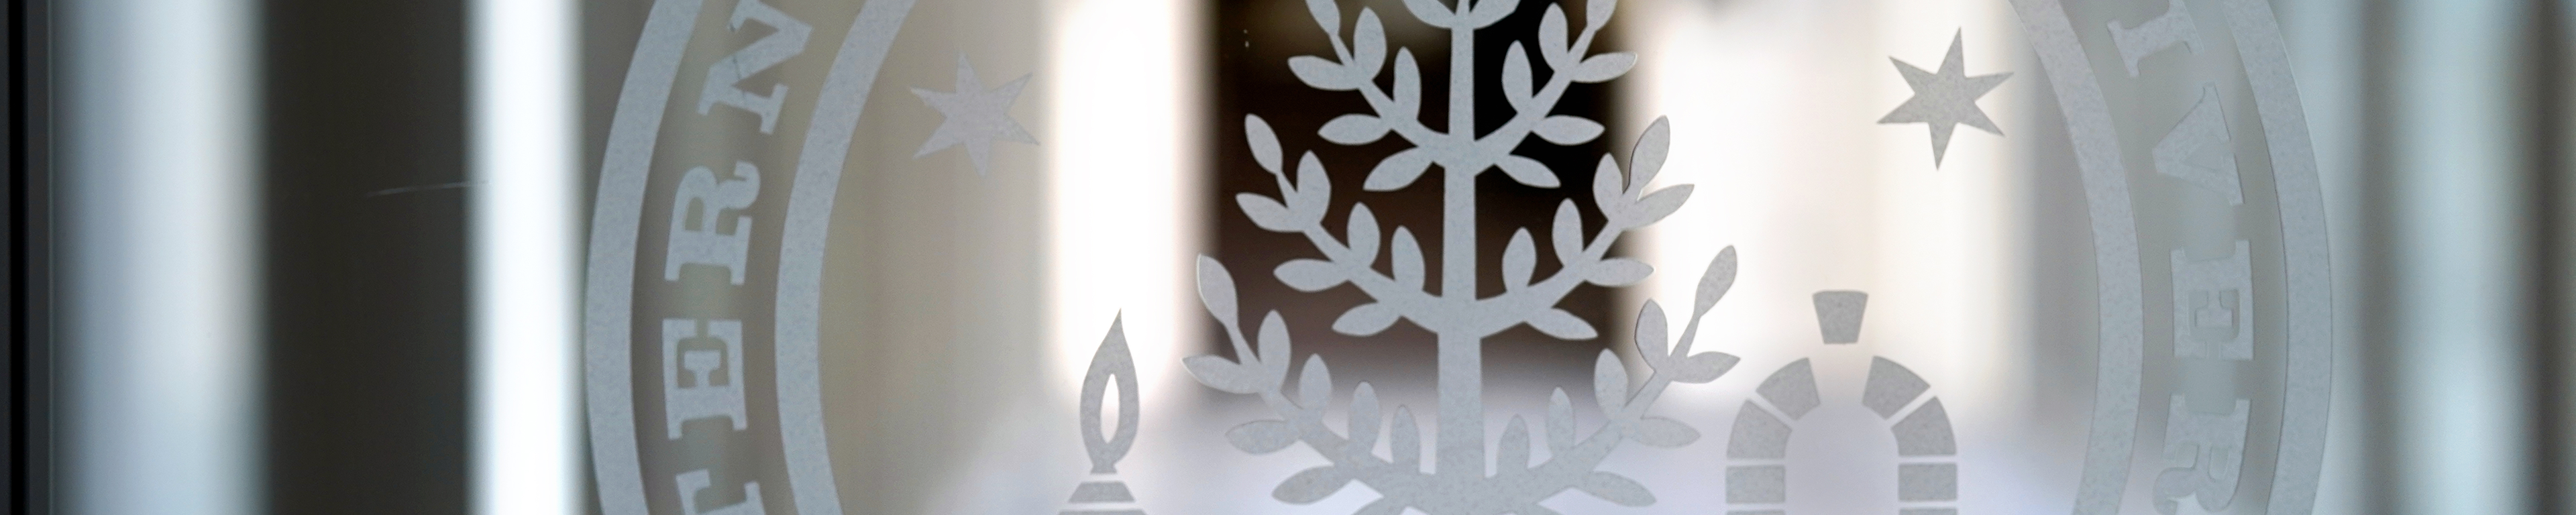 Page banner: WMU seal etched on glass